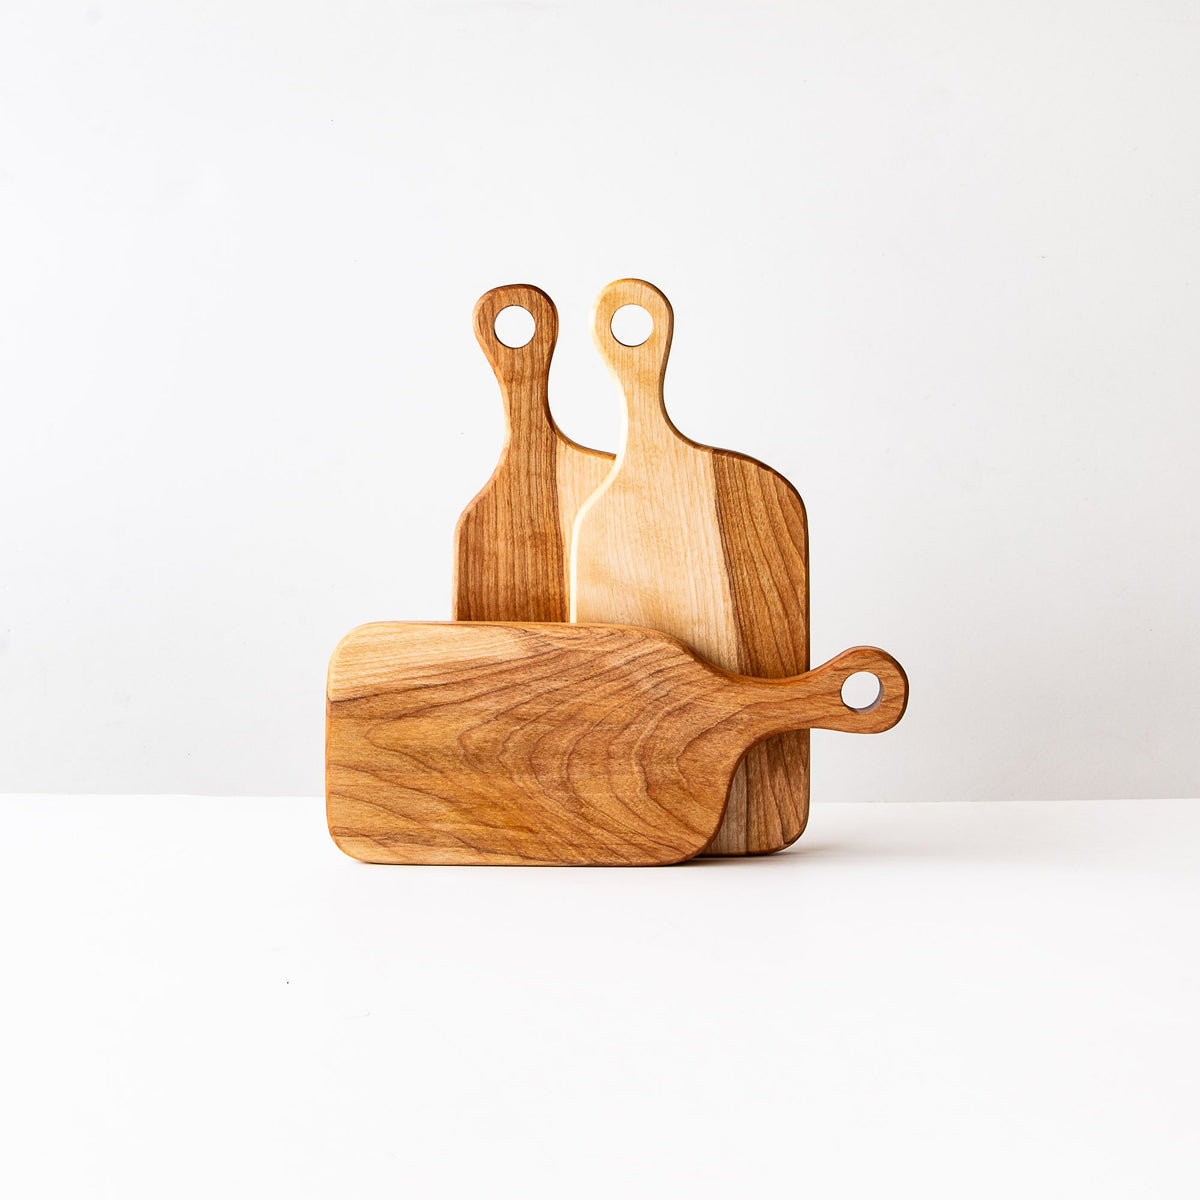 Muskoka N°1 - Three Wooden Cutting Boards in Birch - Sold by Chic & Basta